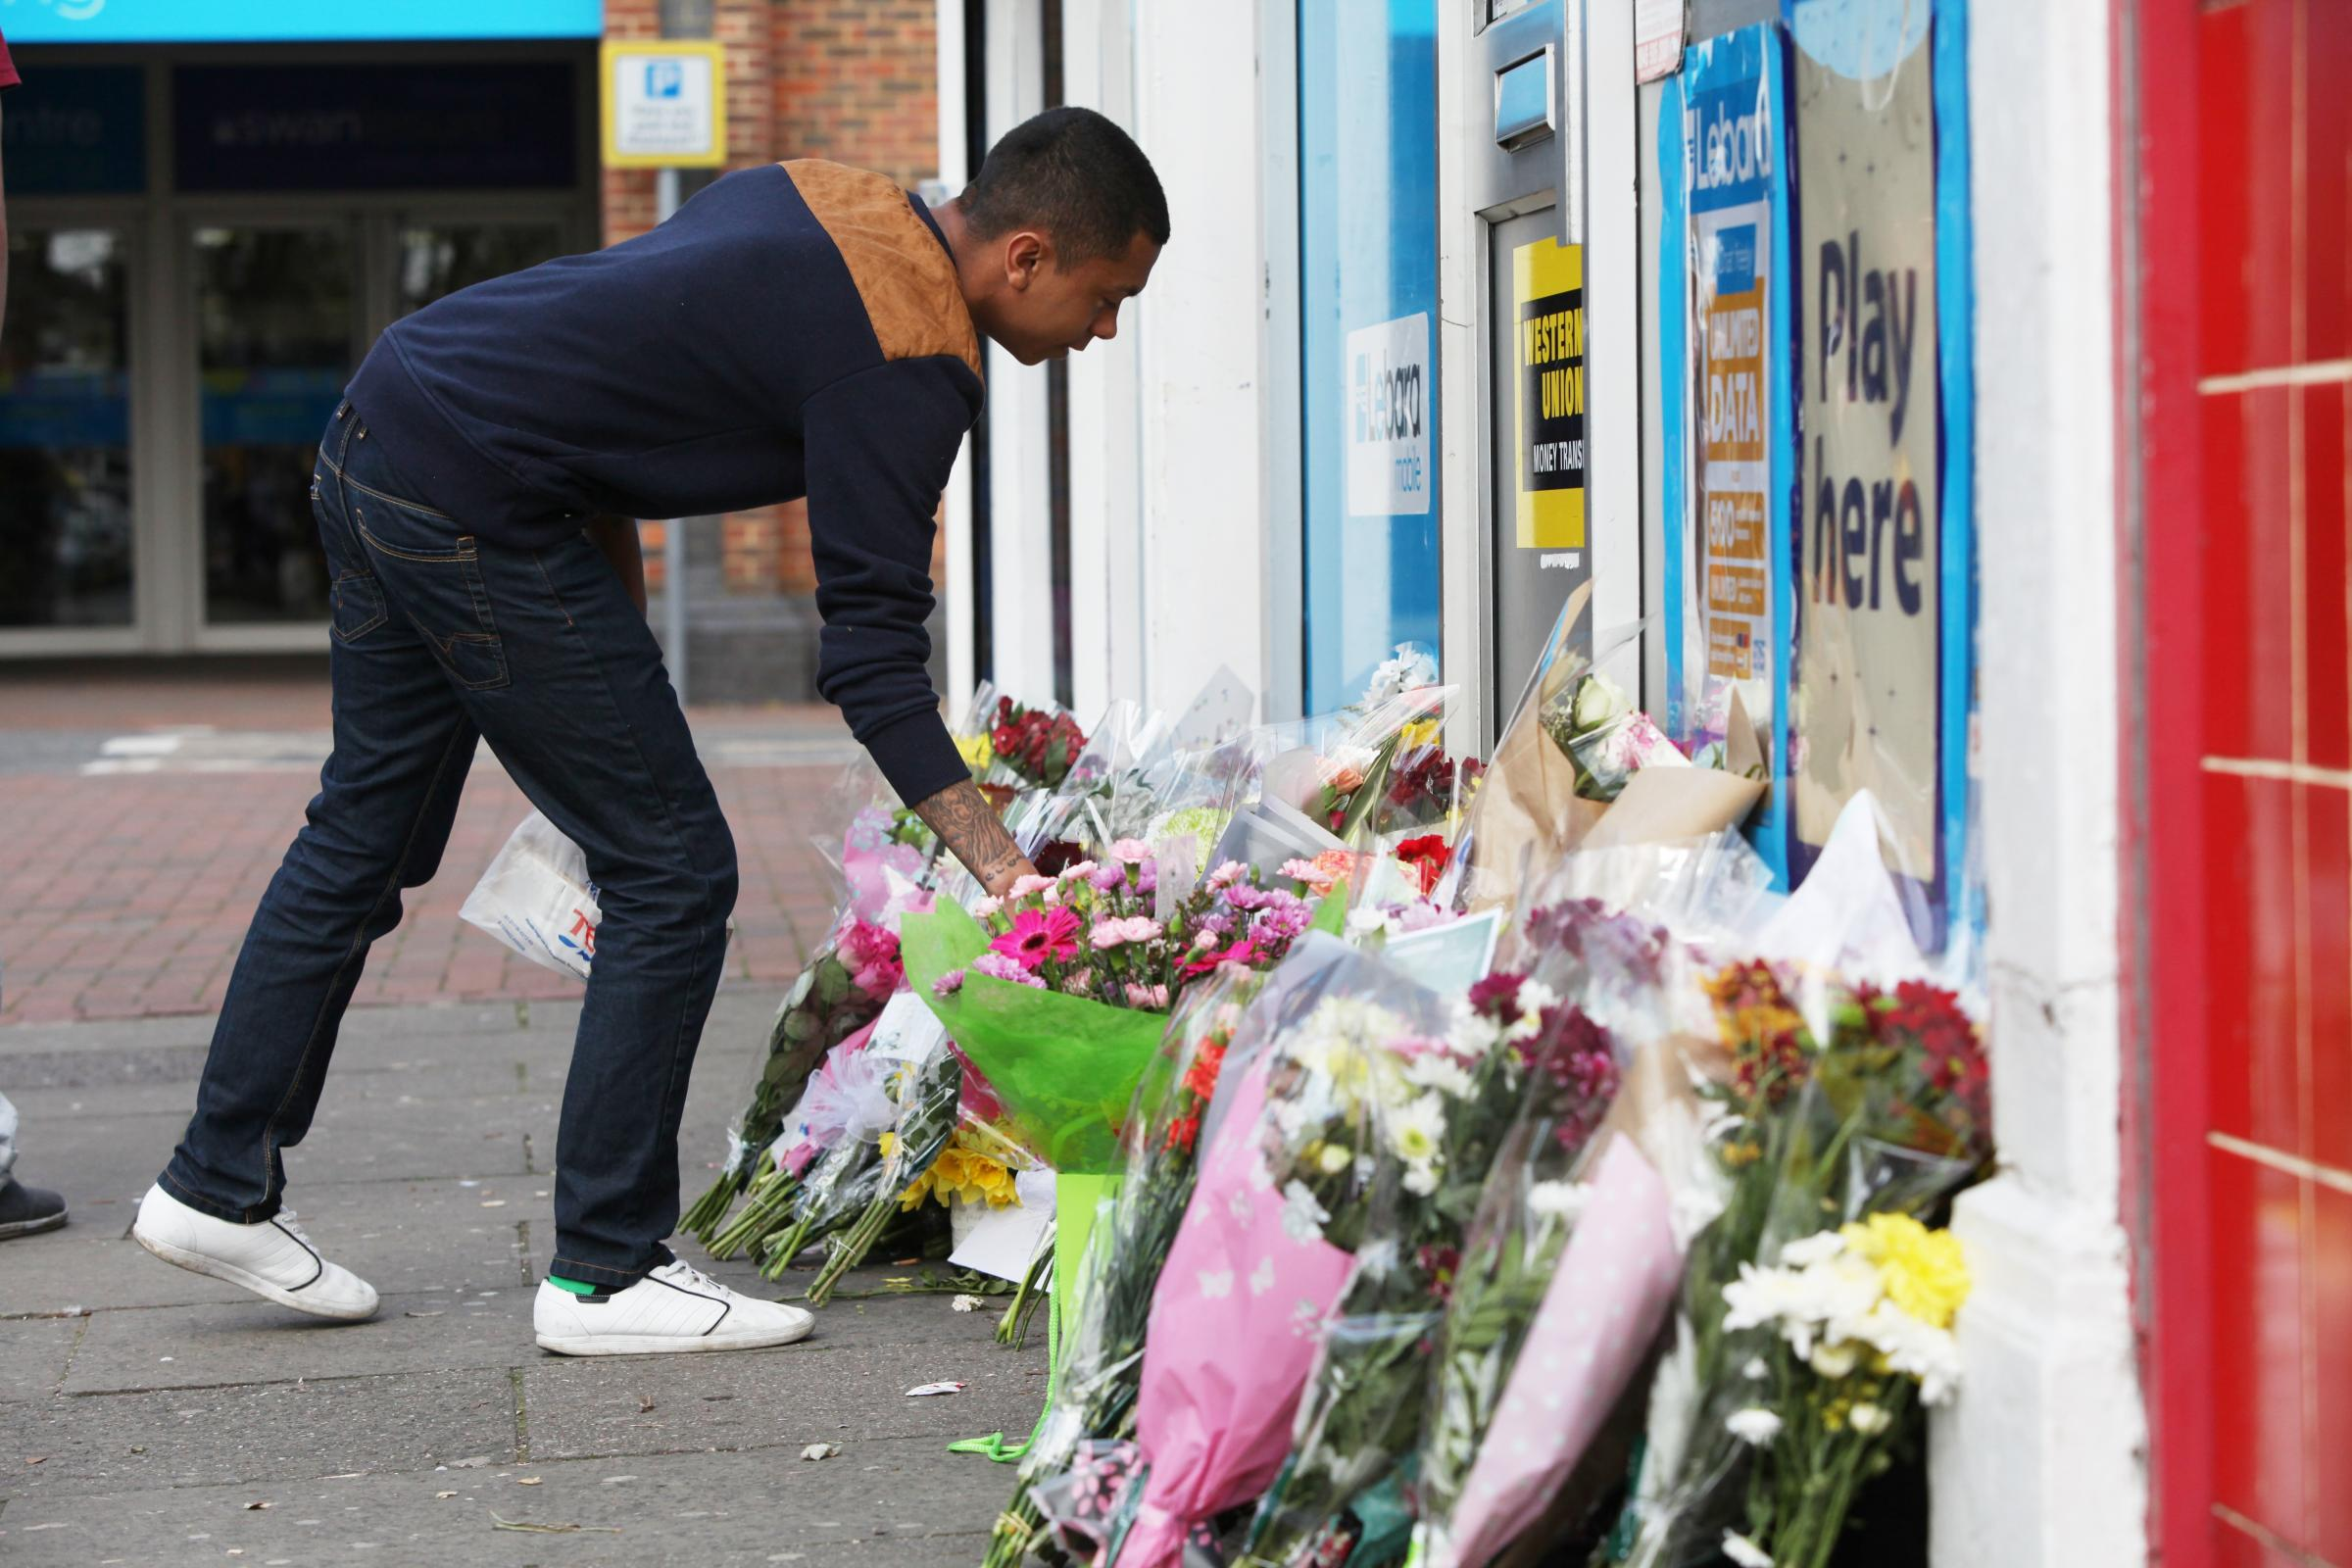 Flowers are laid at the scene of the murder